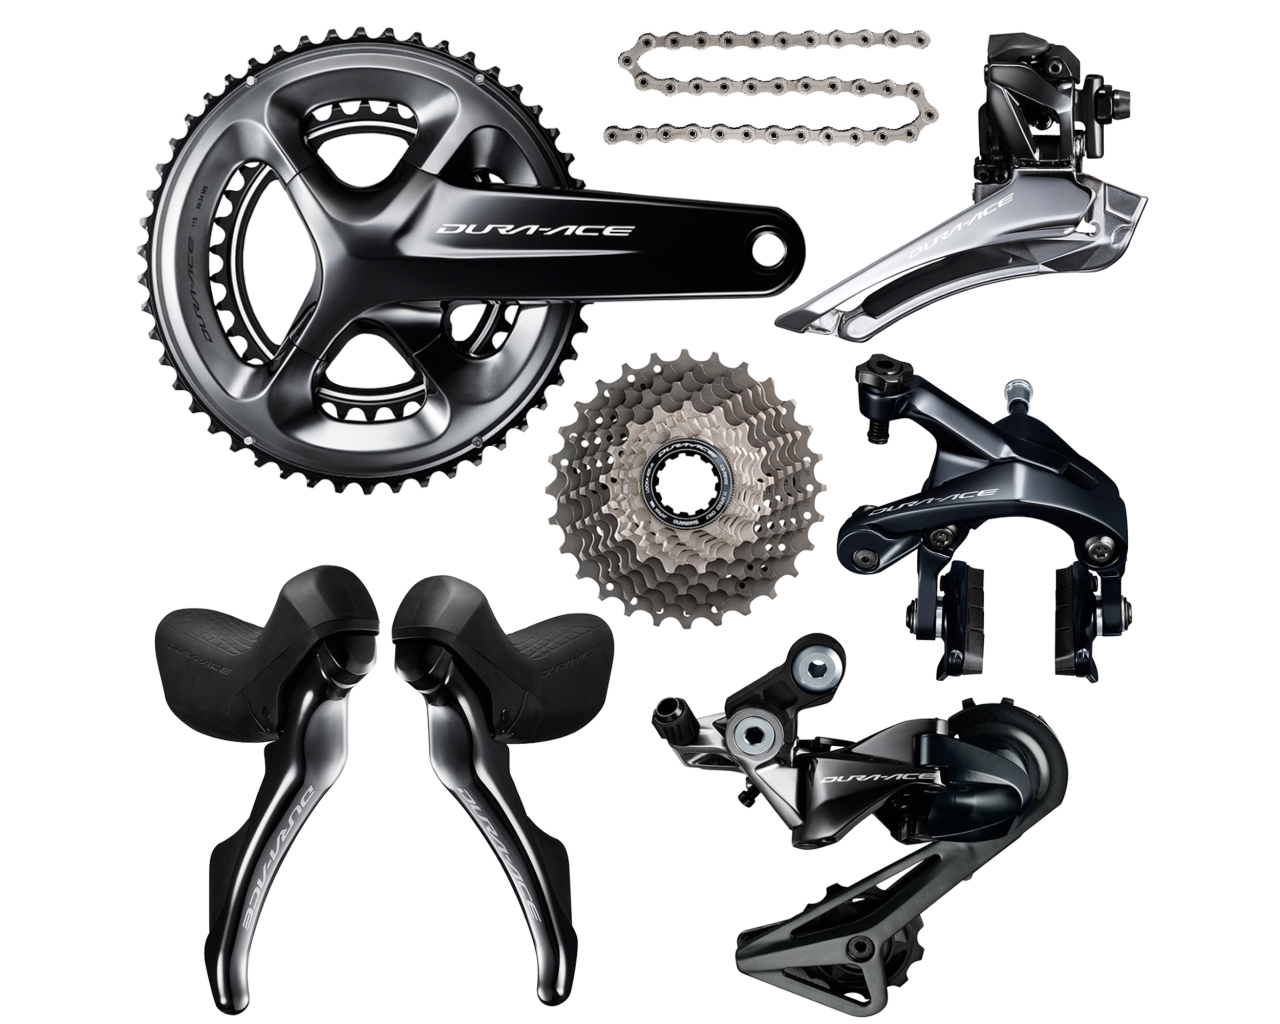 Shimano V Sram Campagnolofight Merlin Cycles Blog Groupset 105 5800 New In Box